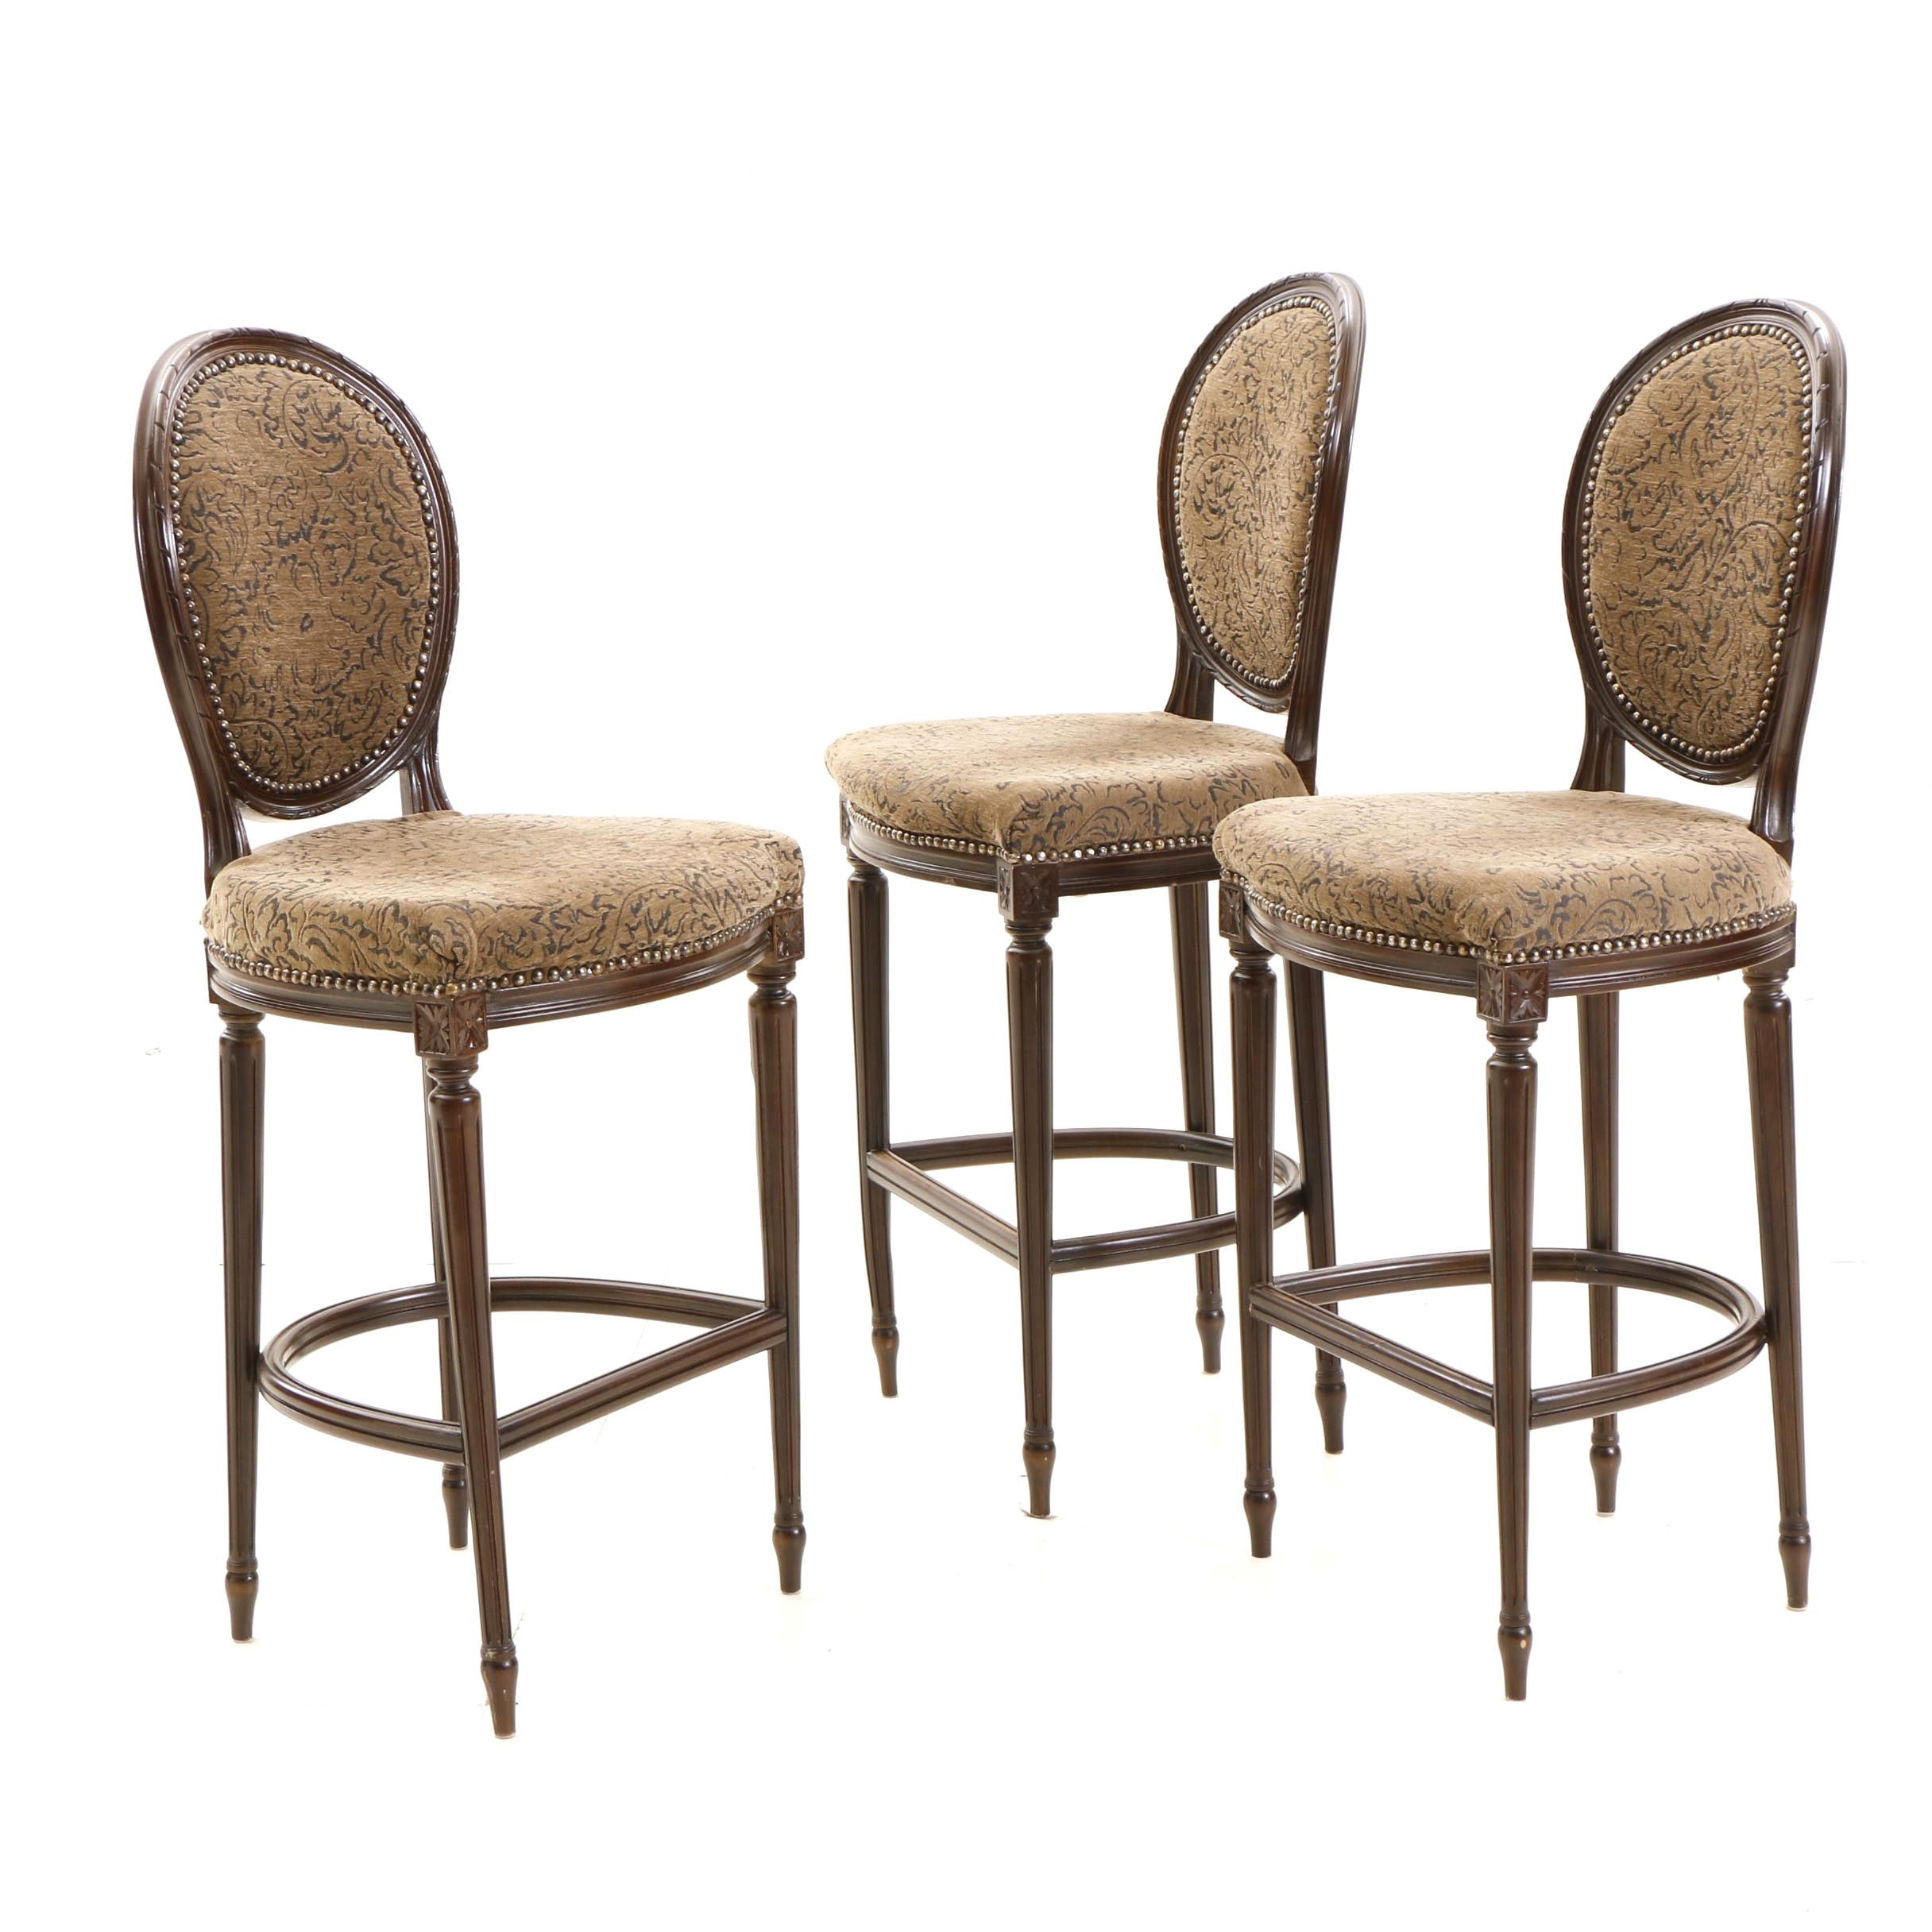 Three Contemporary Upholstered Bar Chairs ...